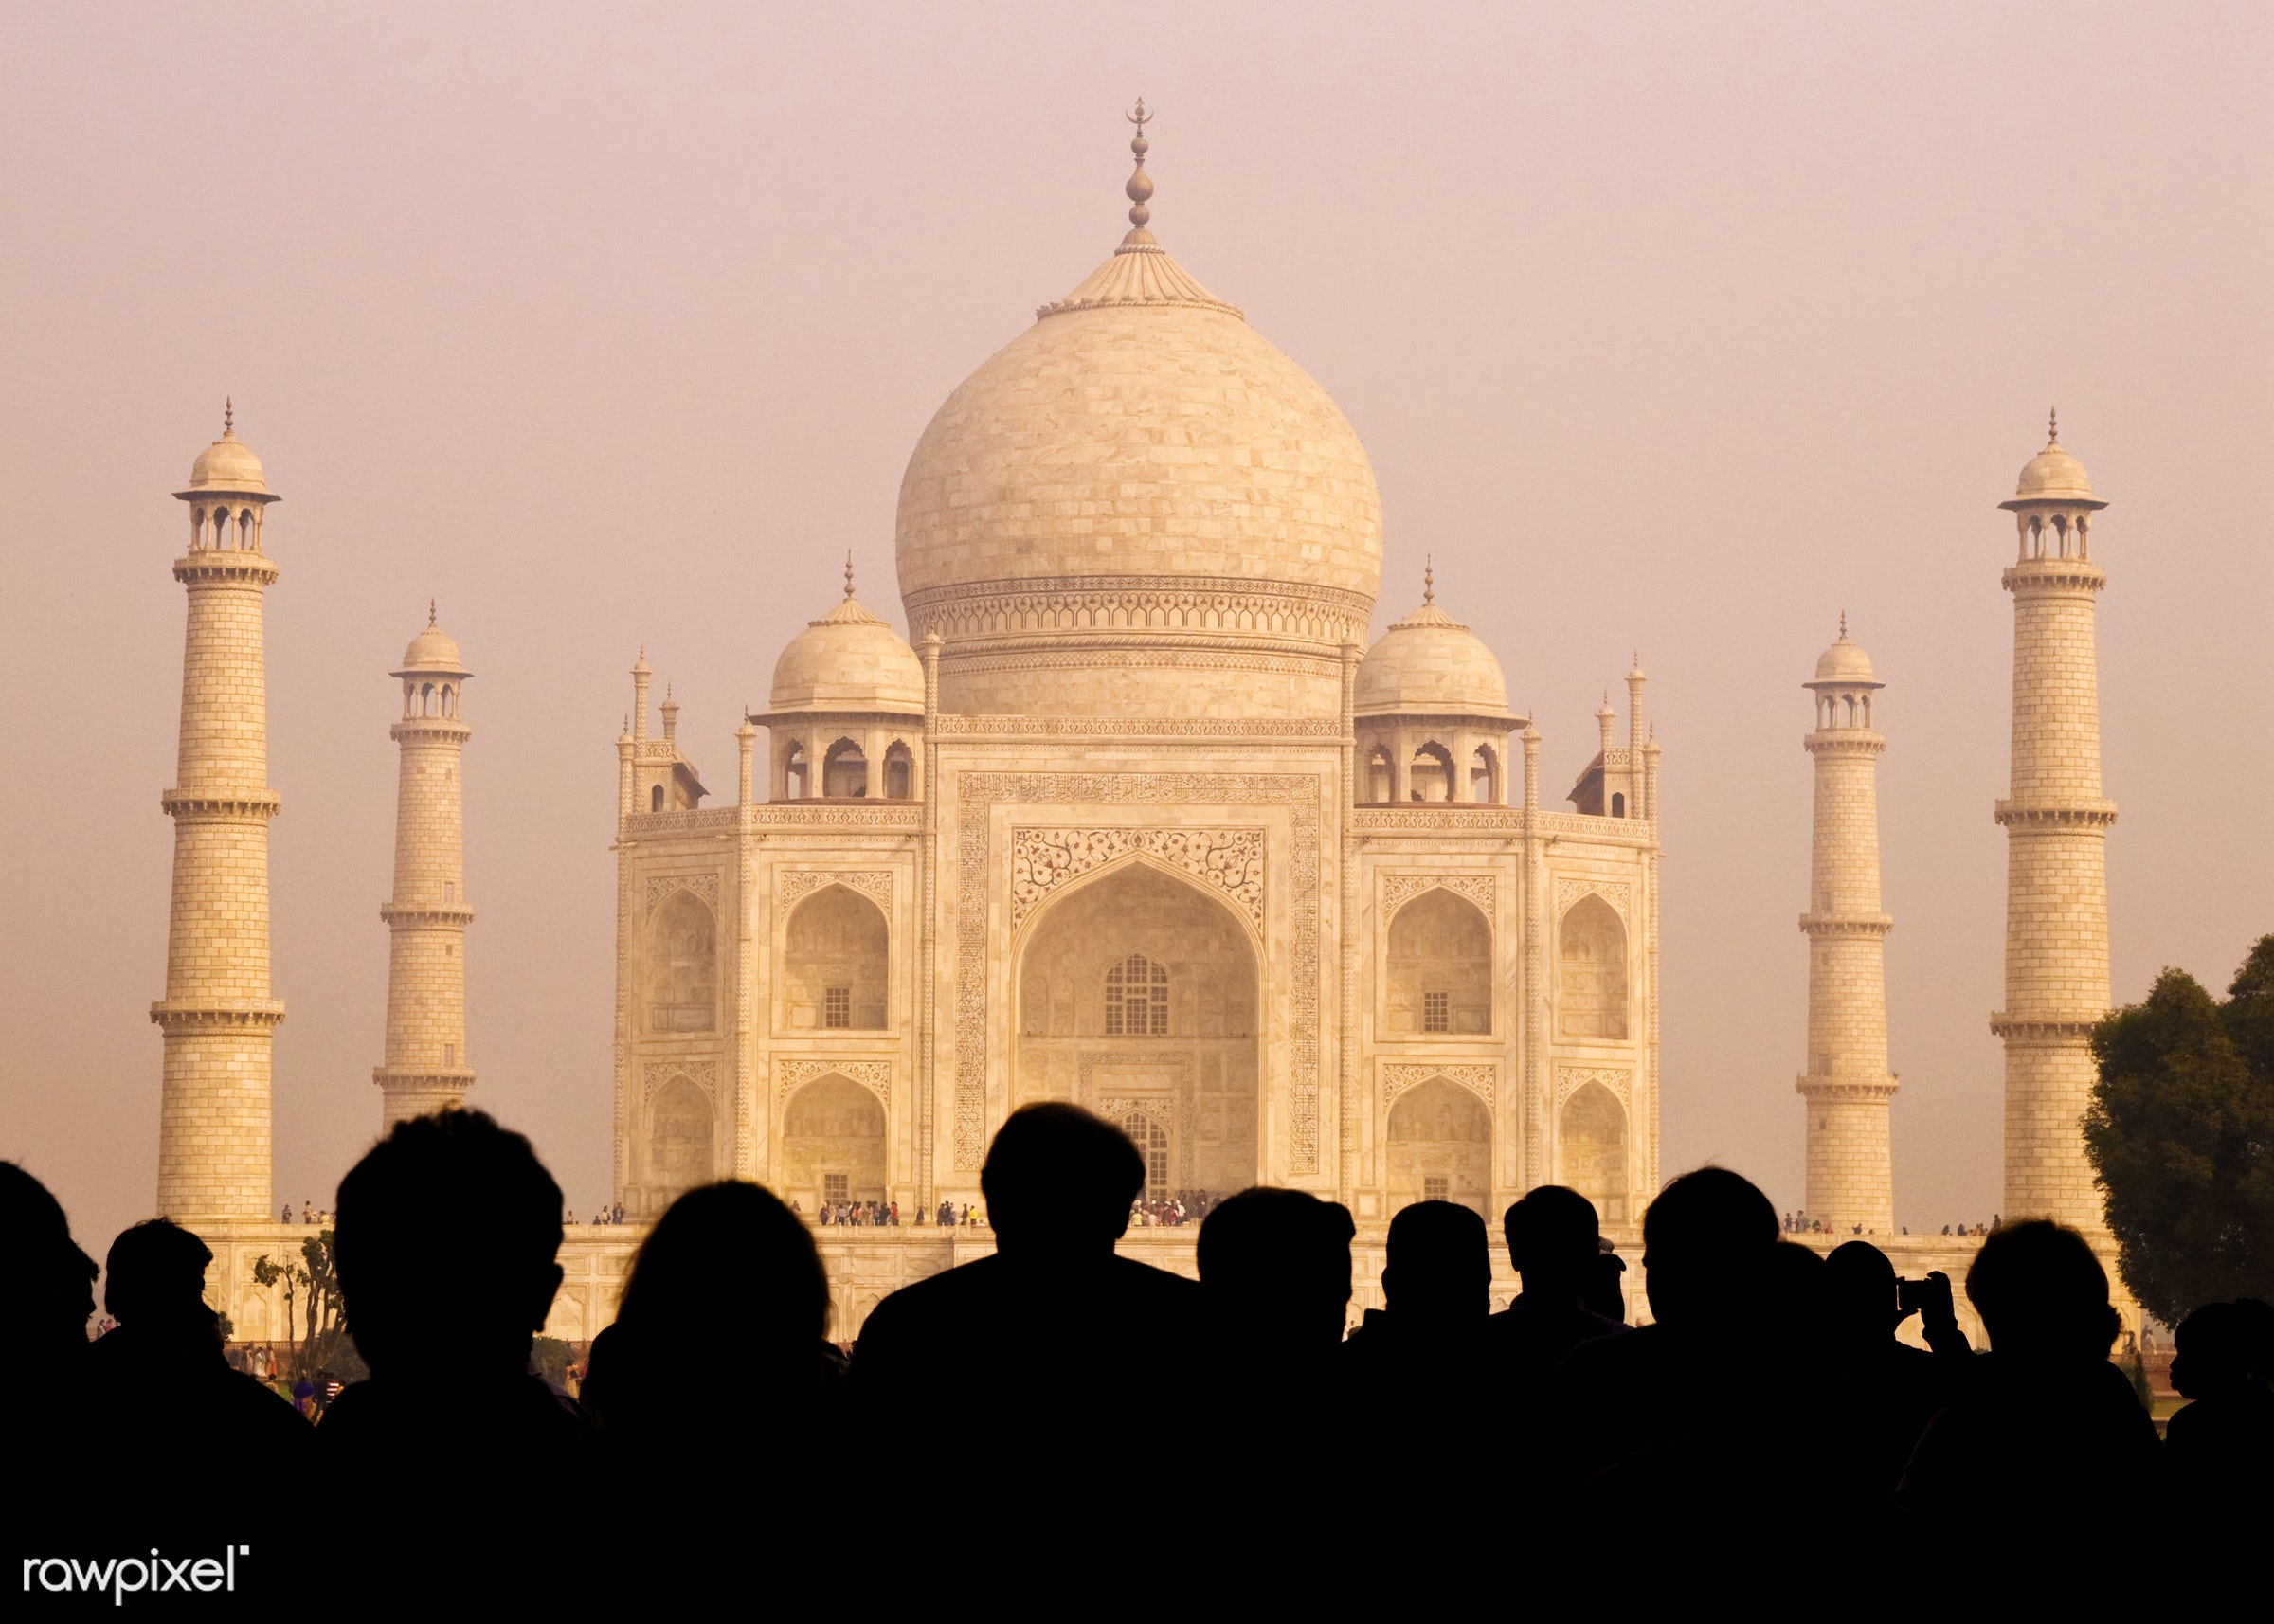 View of the Taj Mahal with tourist silhouettes - 7 wonders, international landmark, lifestyles, architectural styles,...